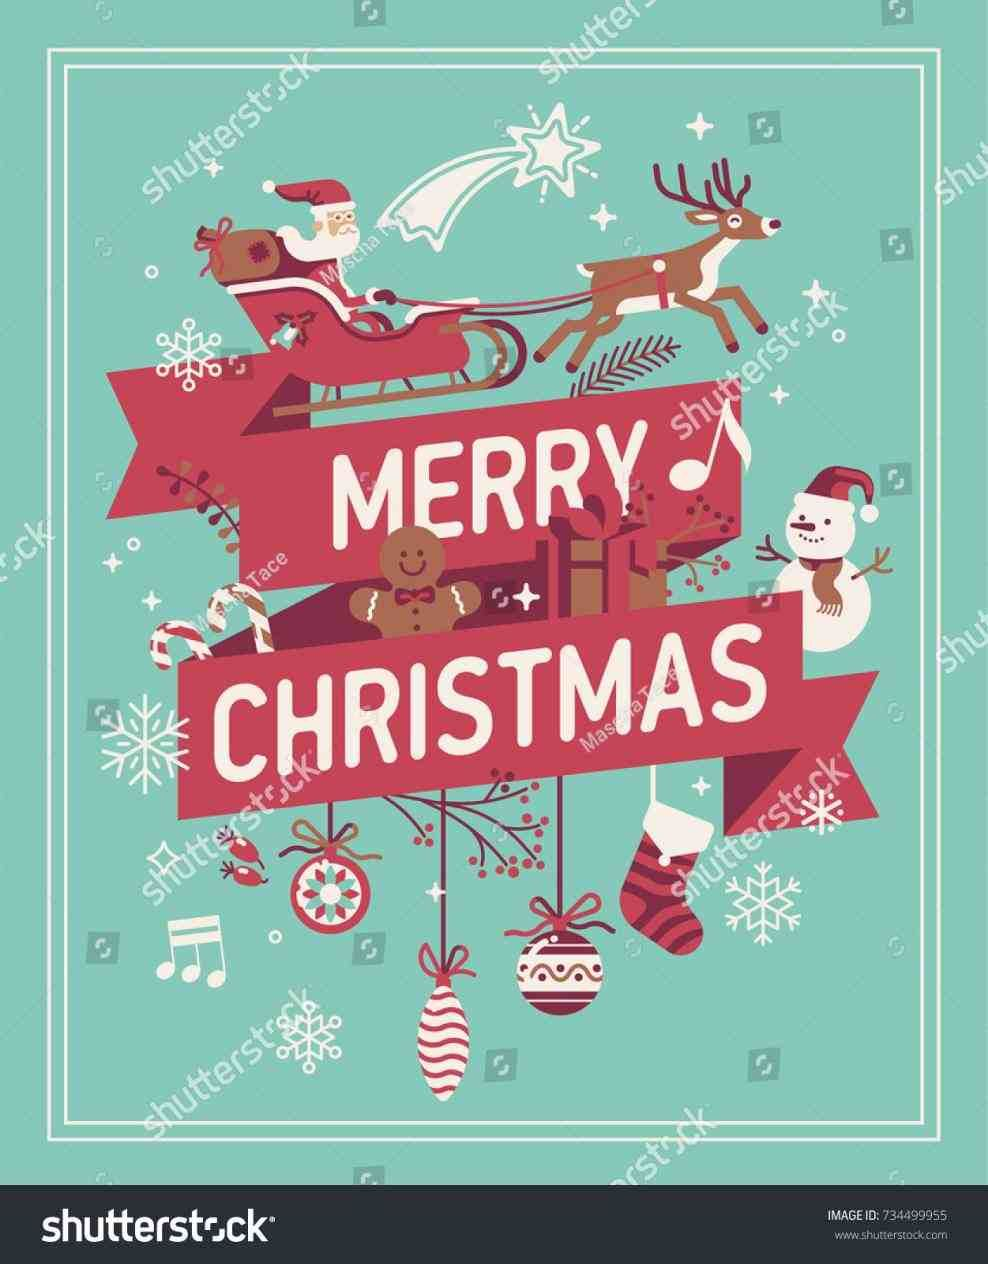 New post merry christmas banner template decors ideas pinterest new post merry christmas banner template greeting card m4hsunfo